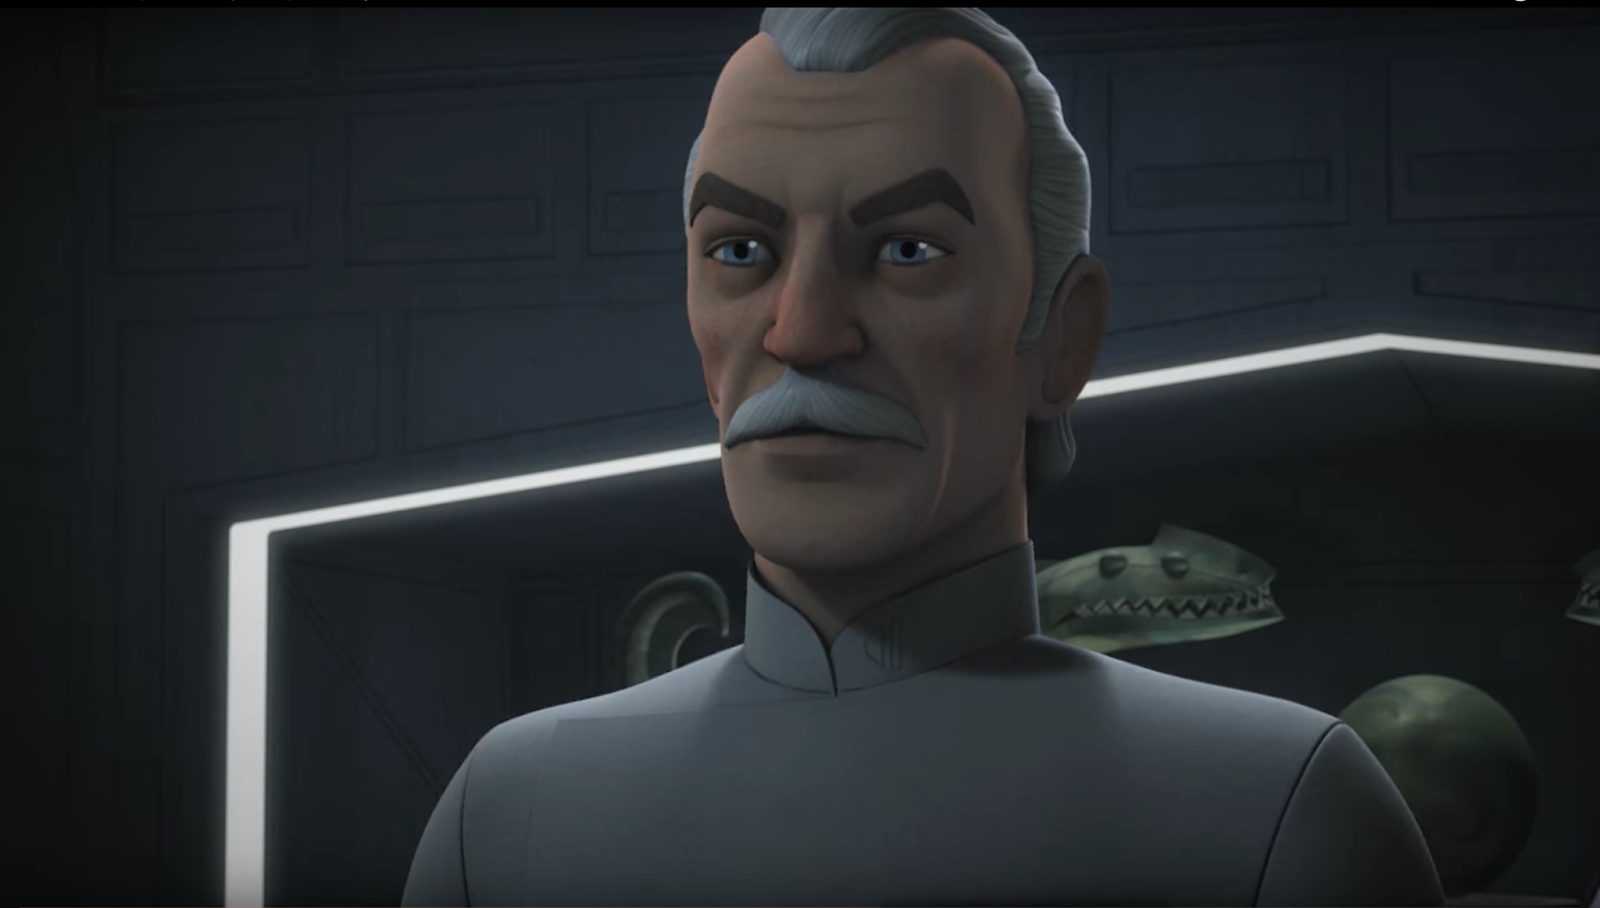 Admiral Yularen Featured in New 'Star Wars Rebels' Clip